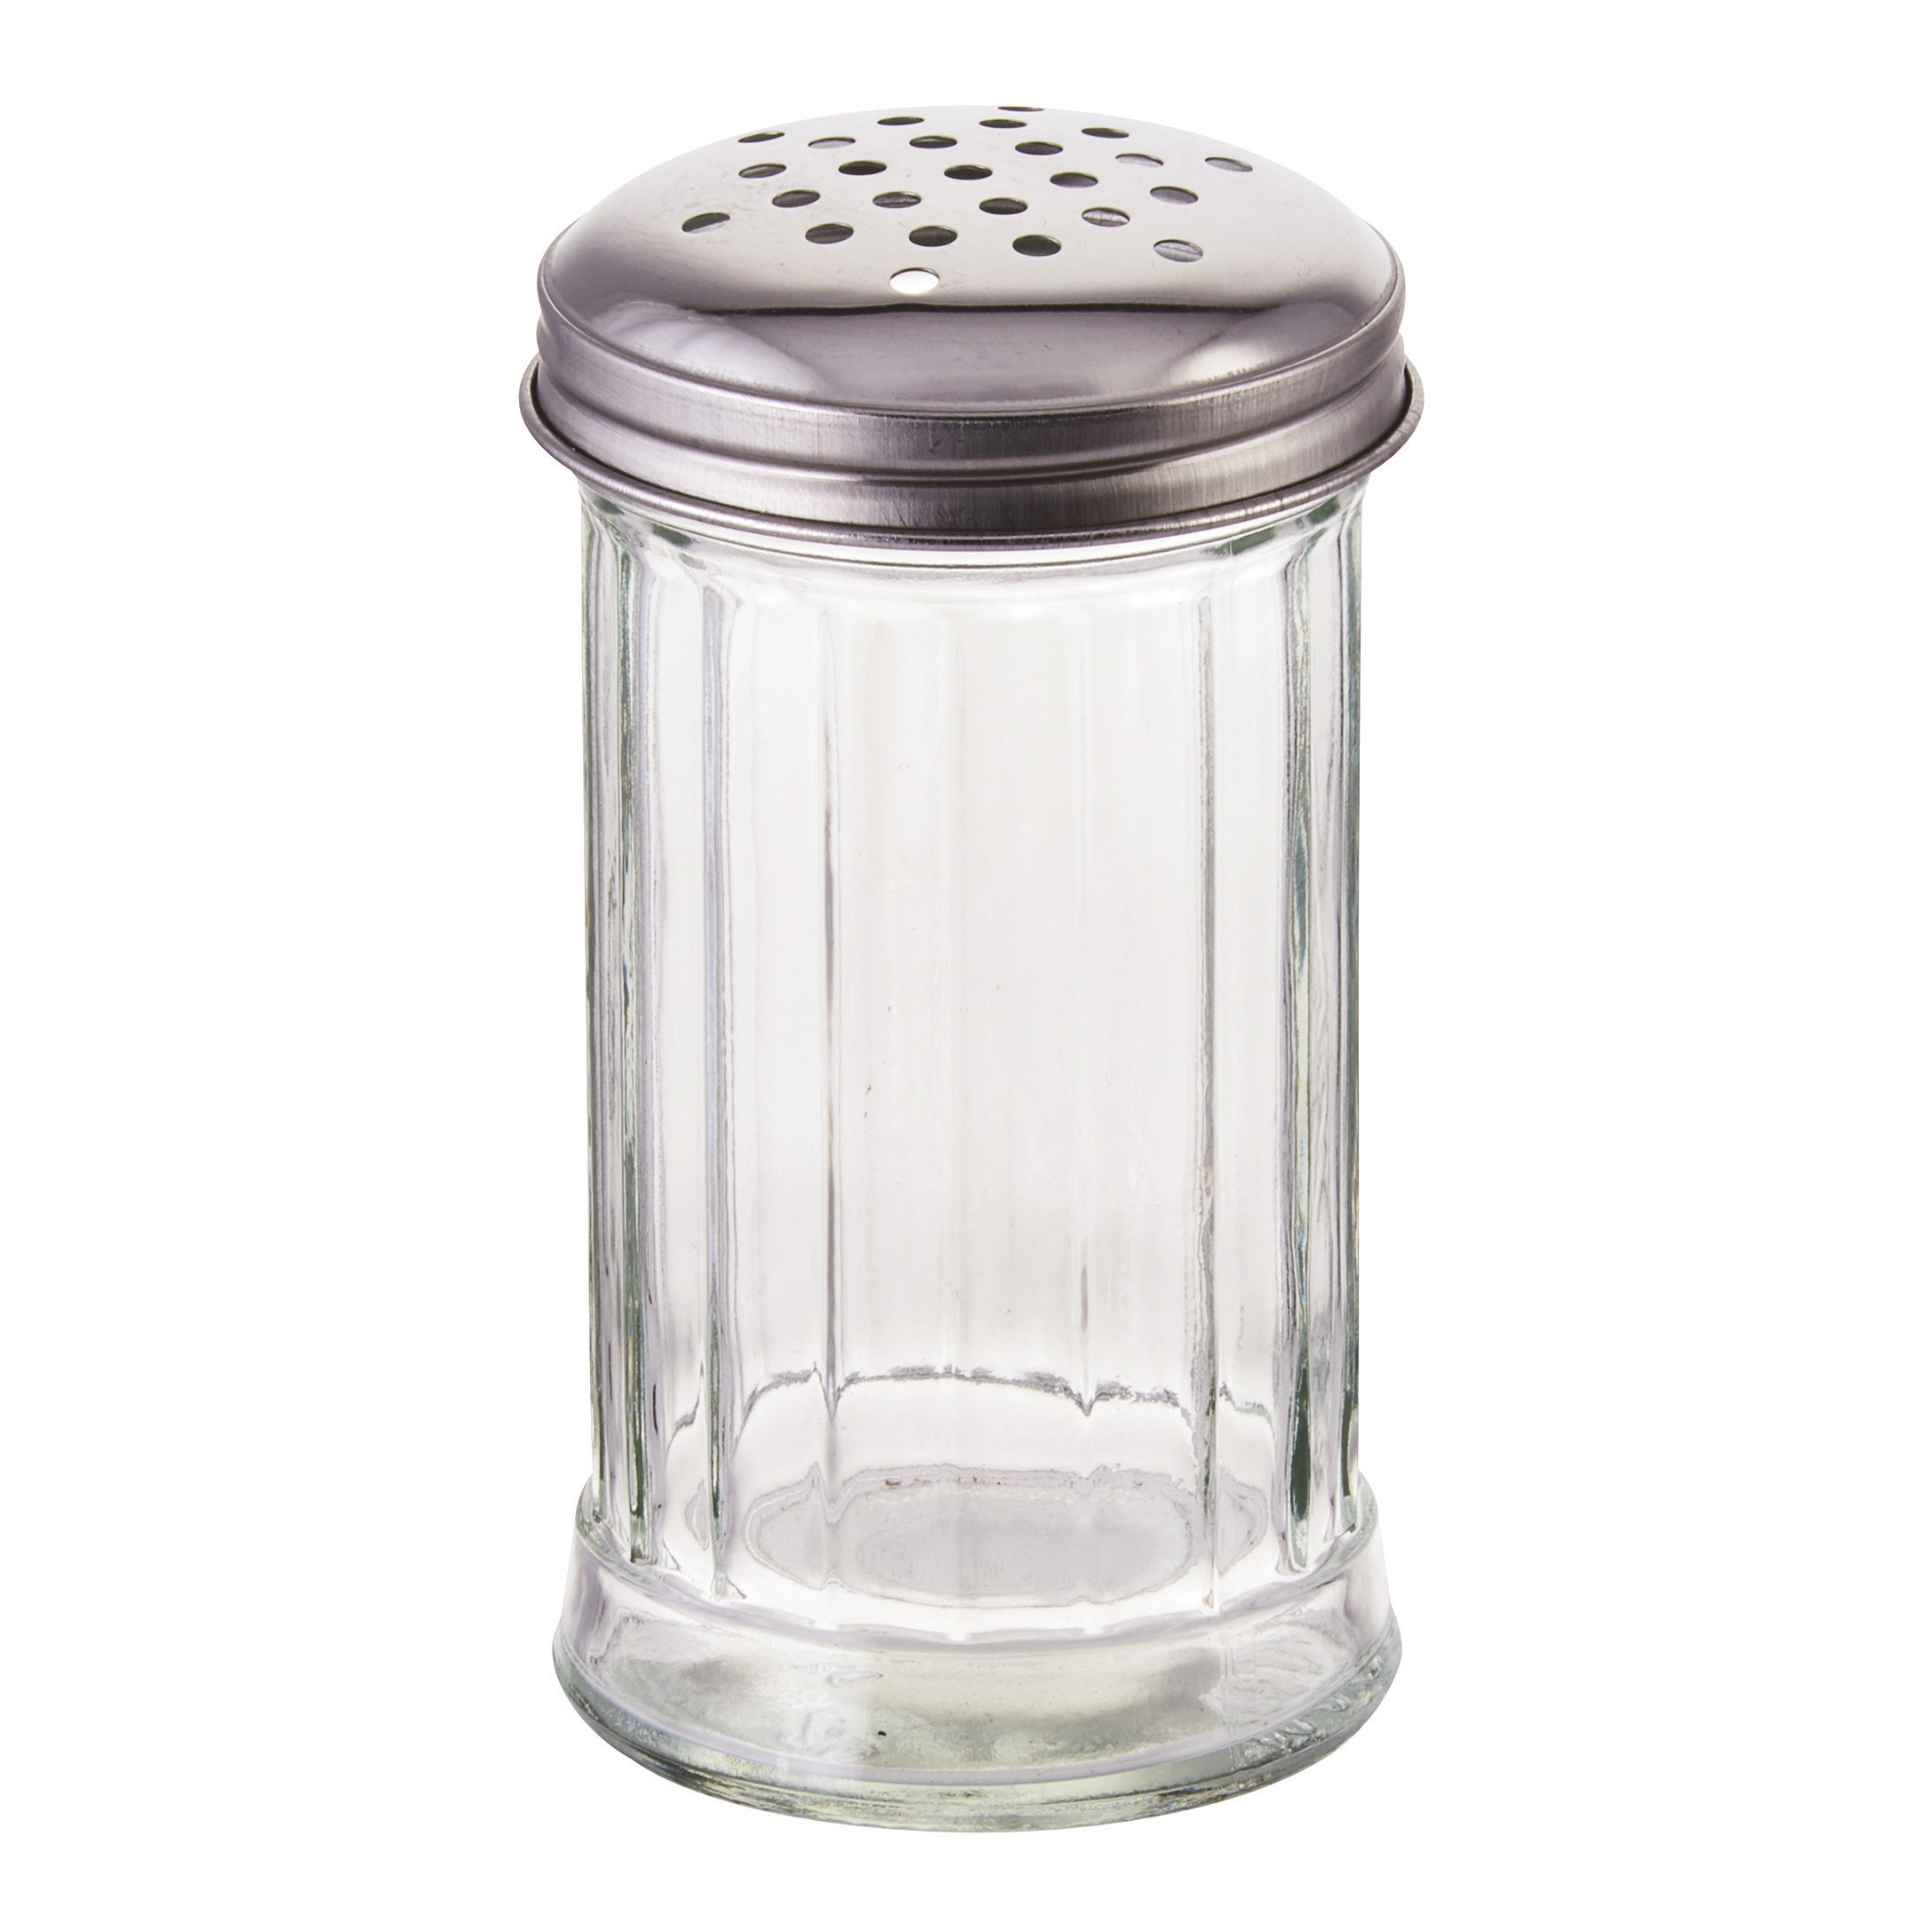 Winco G-103 sugar pourer shaker